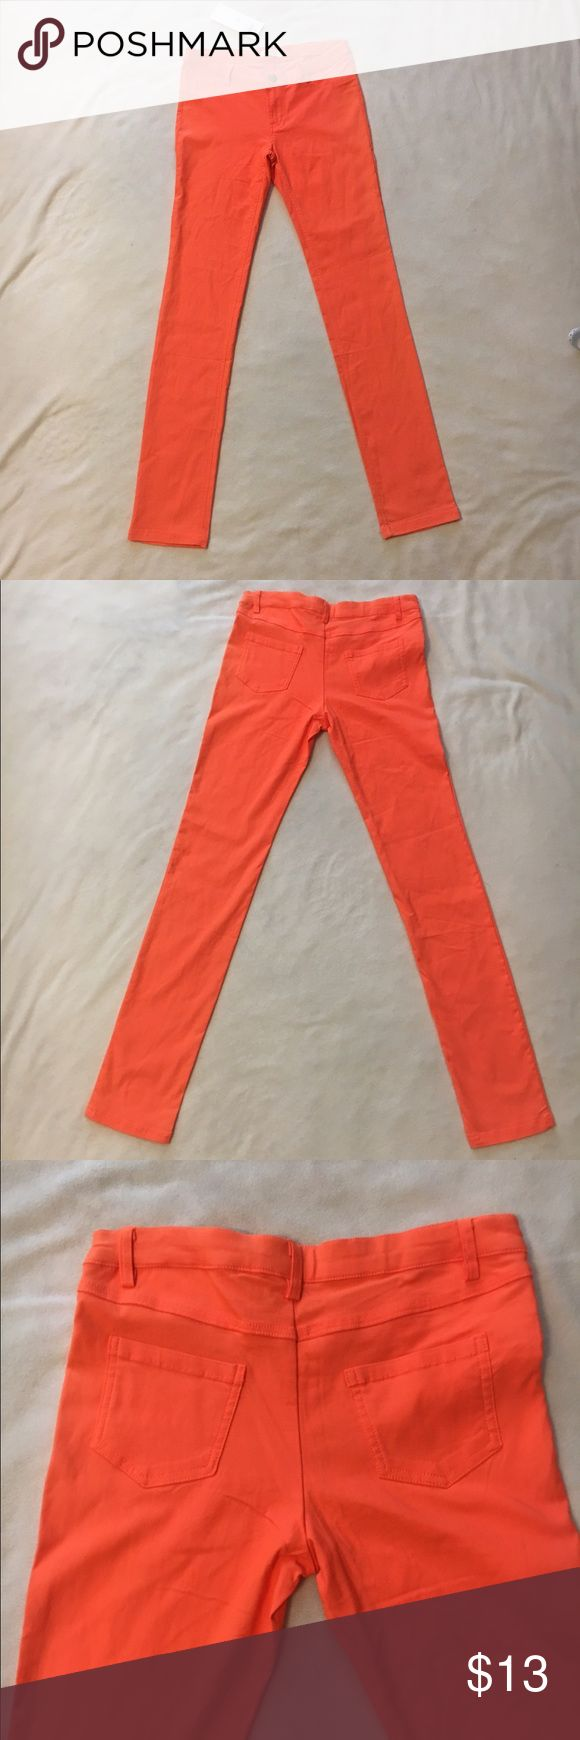 """FREE STUFF!!  Orange stretchy skinny jeans Orange stretchy skinny jeans, 32"""" inseam, new with tags.  Colored pants are buy one get one free.  Just let me know in the comments. Hot Delicious Jeans Skinny"""